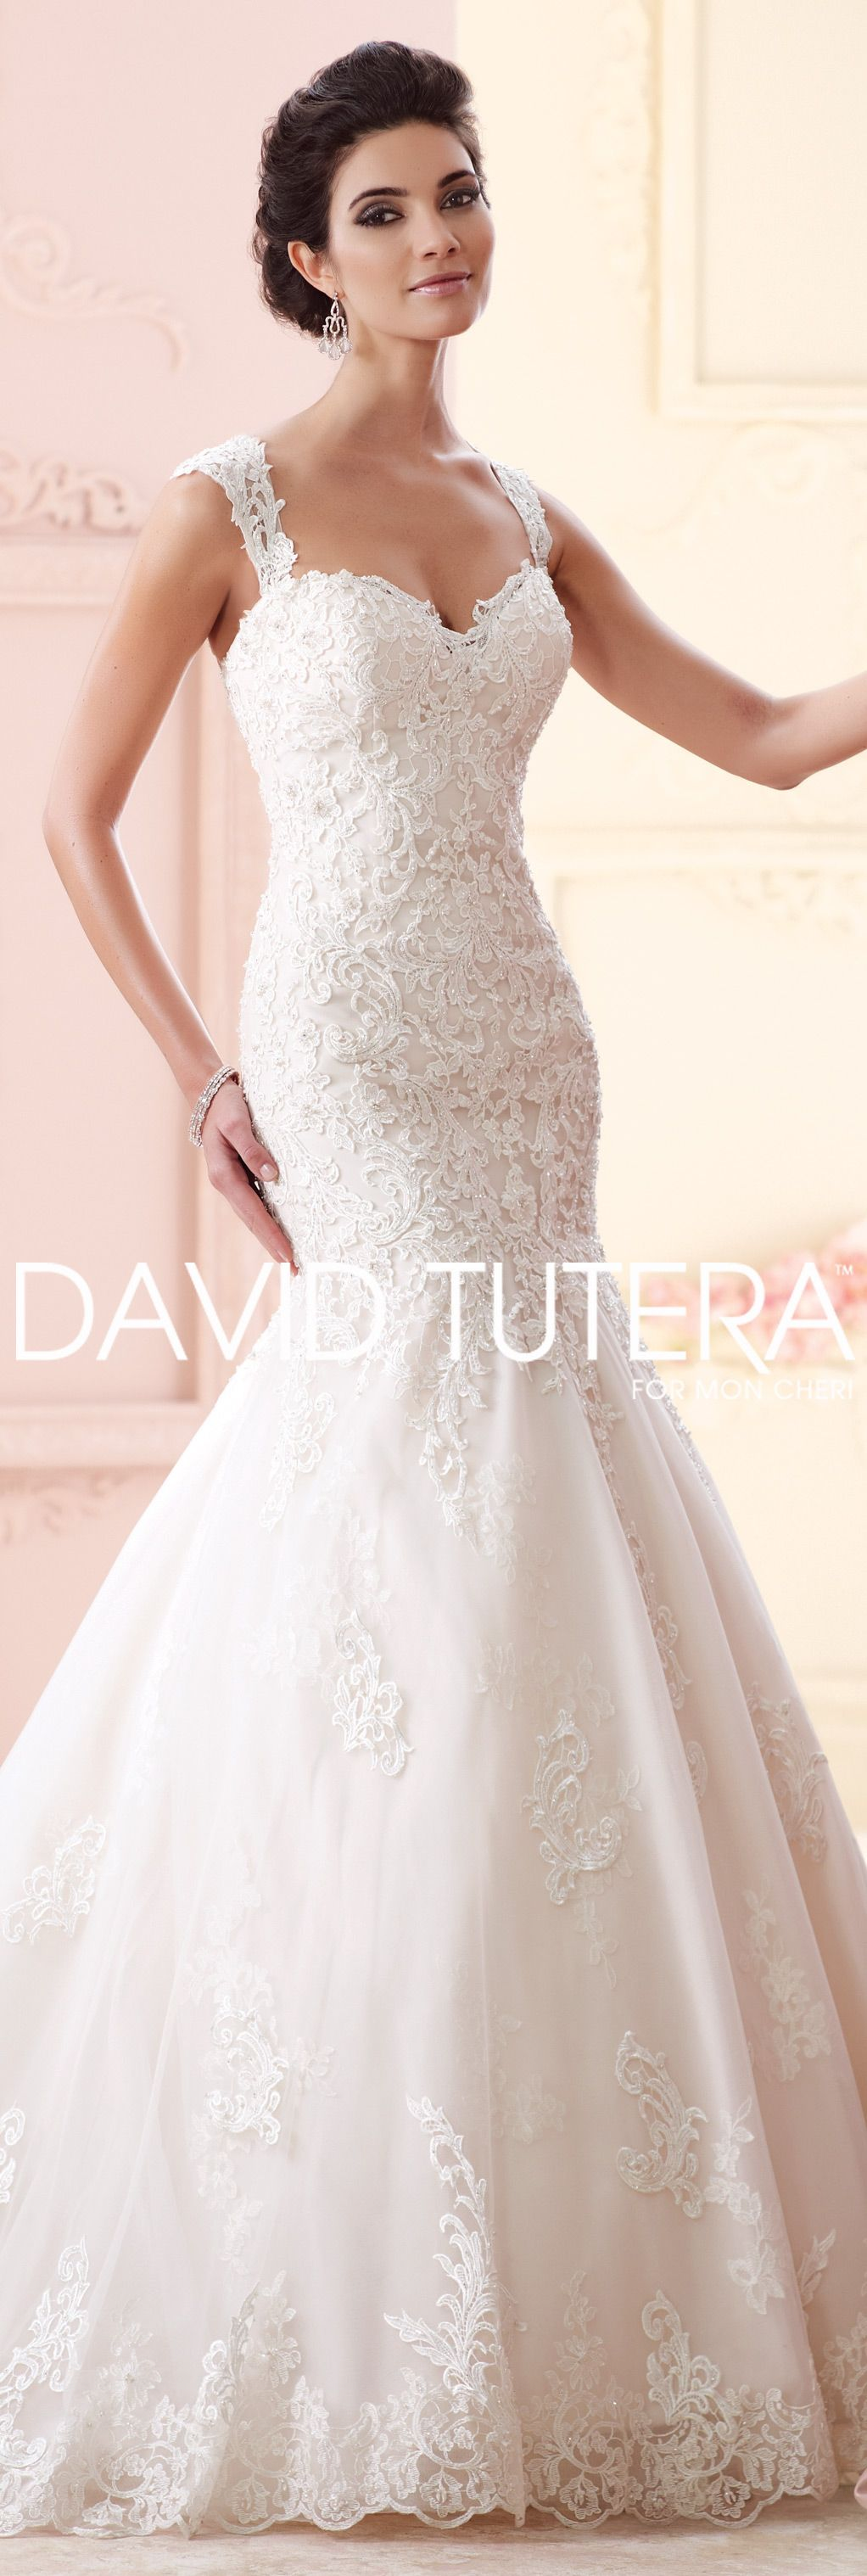 The David Tutera for Mon Cheri Fall 2015 Wedding Gown Collection - Style  No. 215261 Maggie  laceweddingdresses efb5a525d